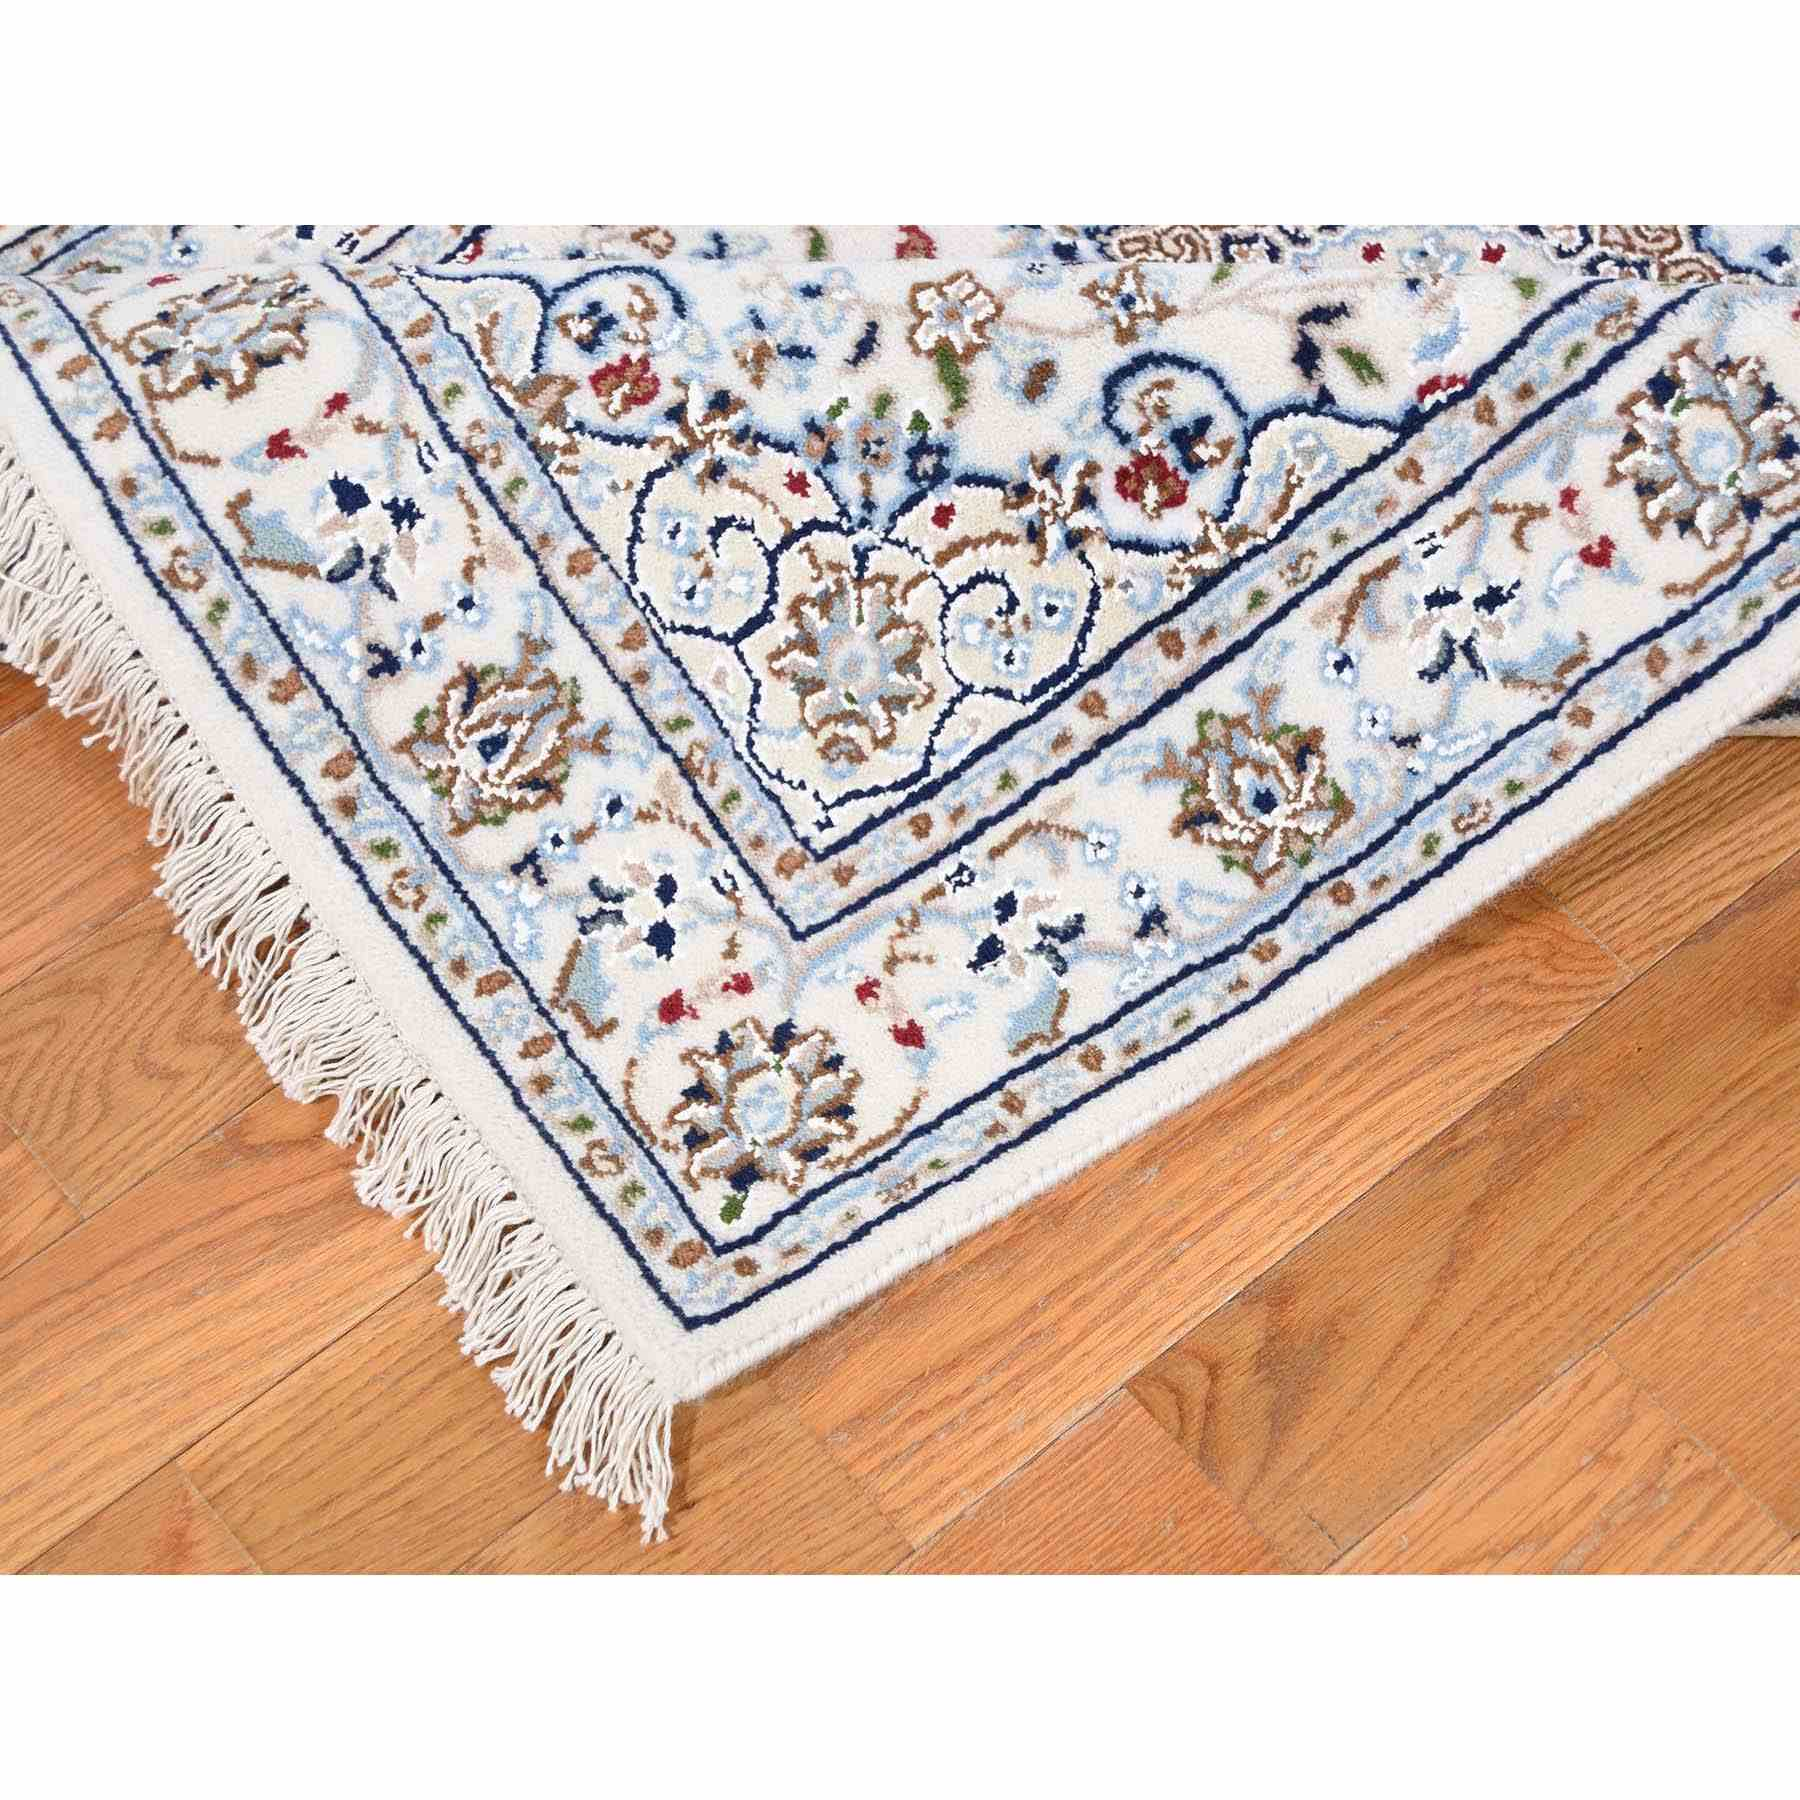 Fine-Oriental-Hand-Knotted-Rug-296920